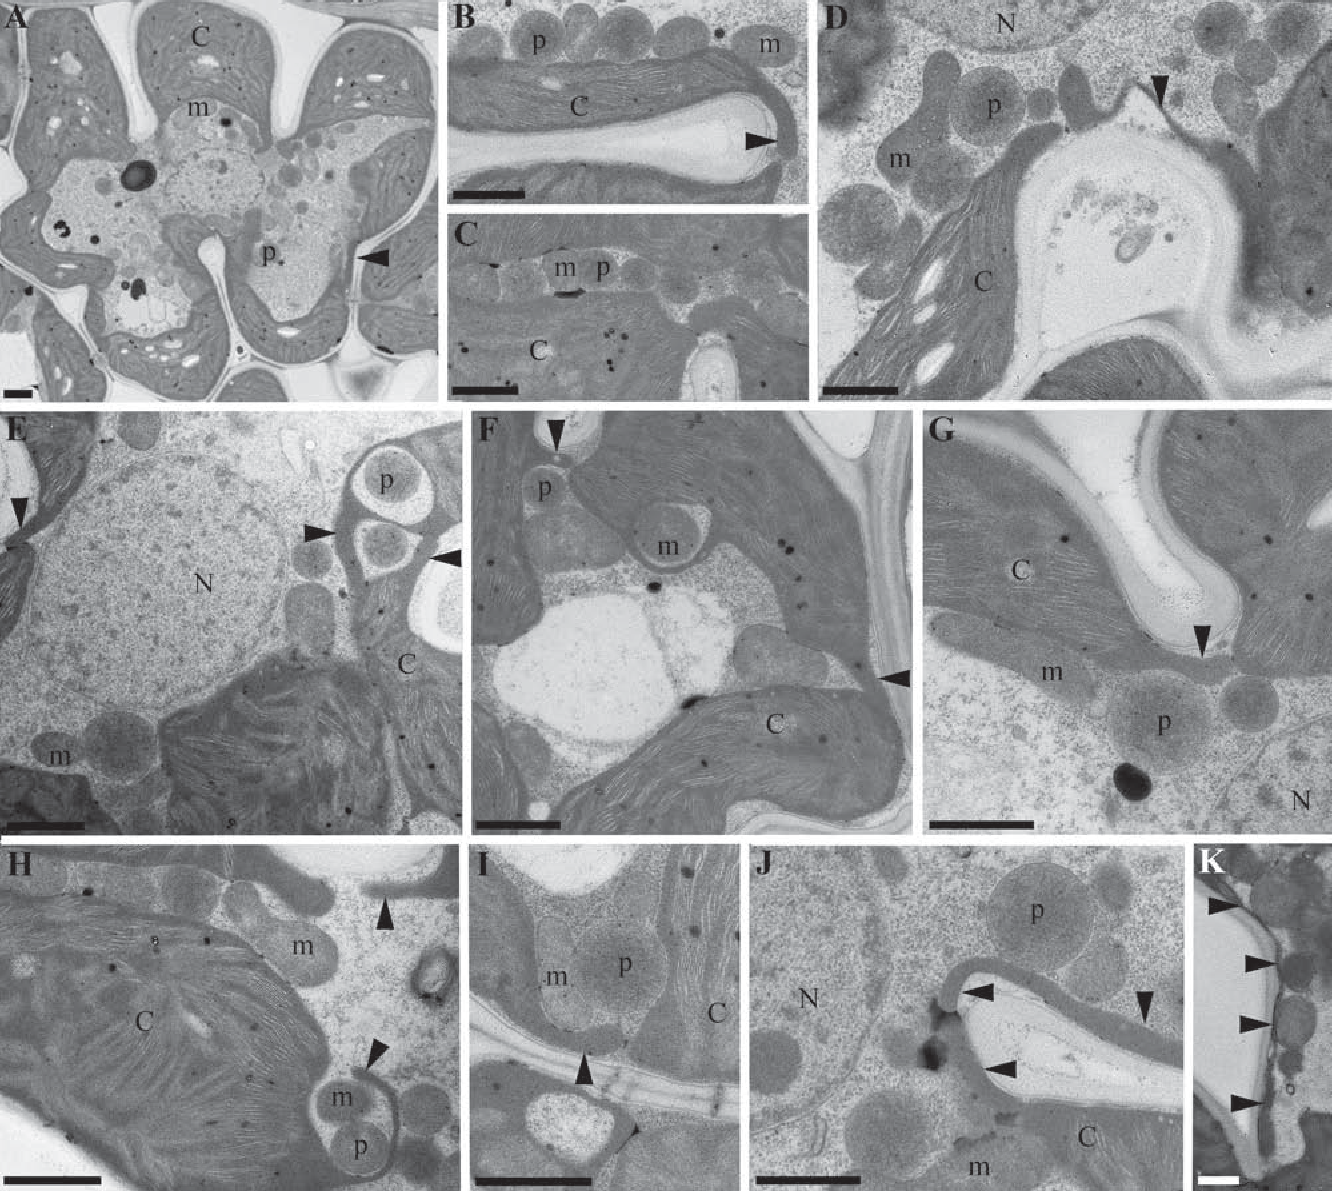 The Functional Anatomy Of Rice Leaves Implications For Refixation